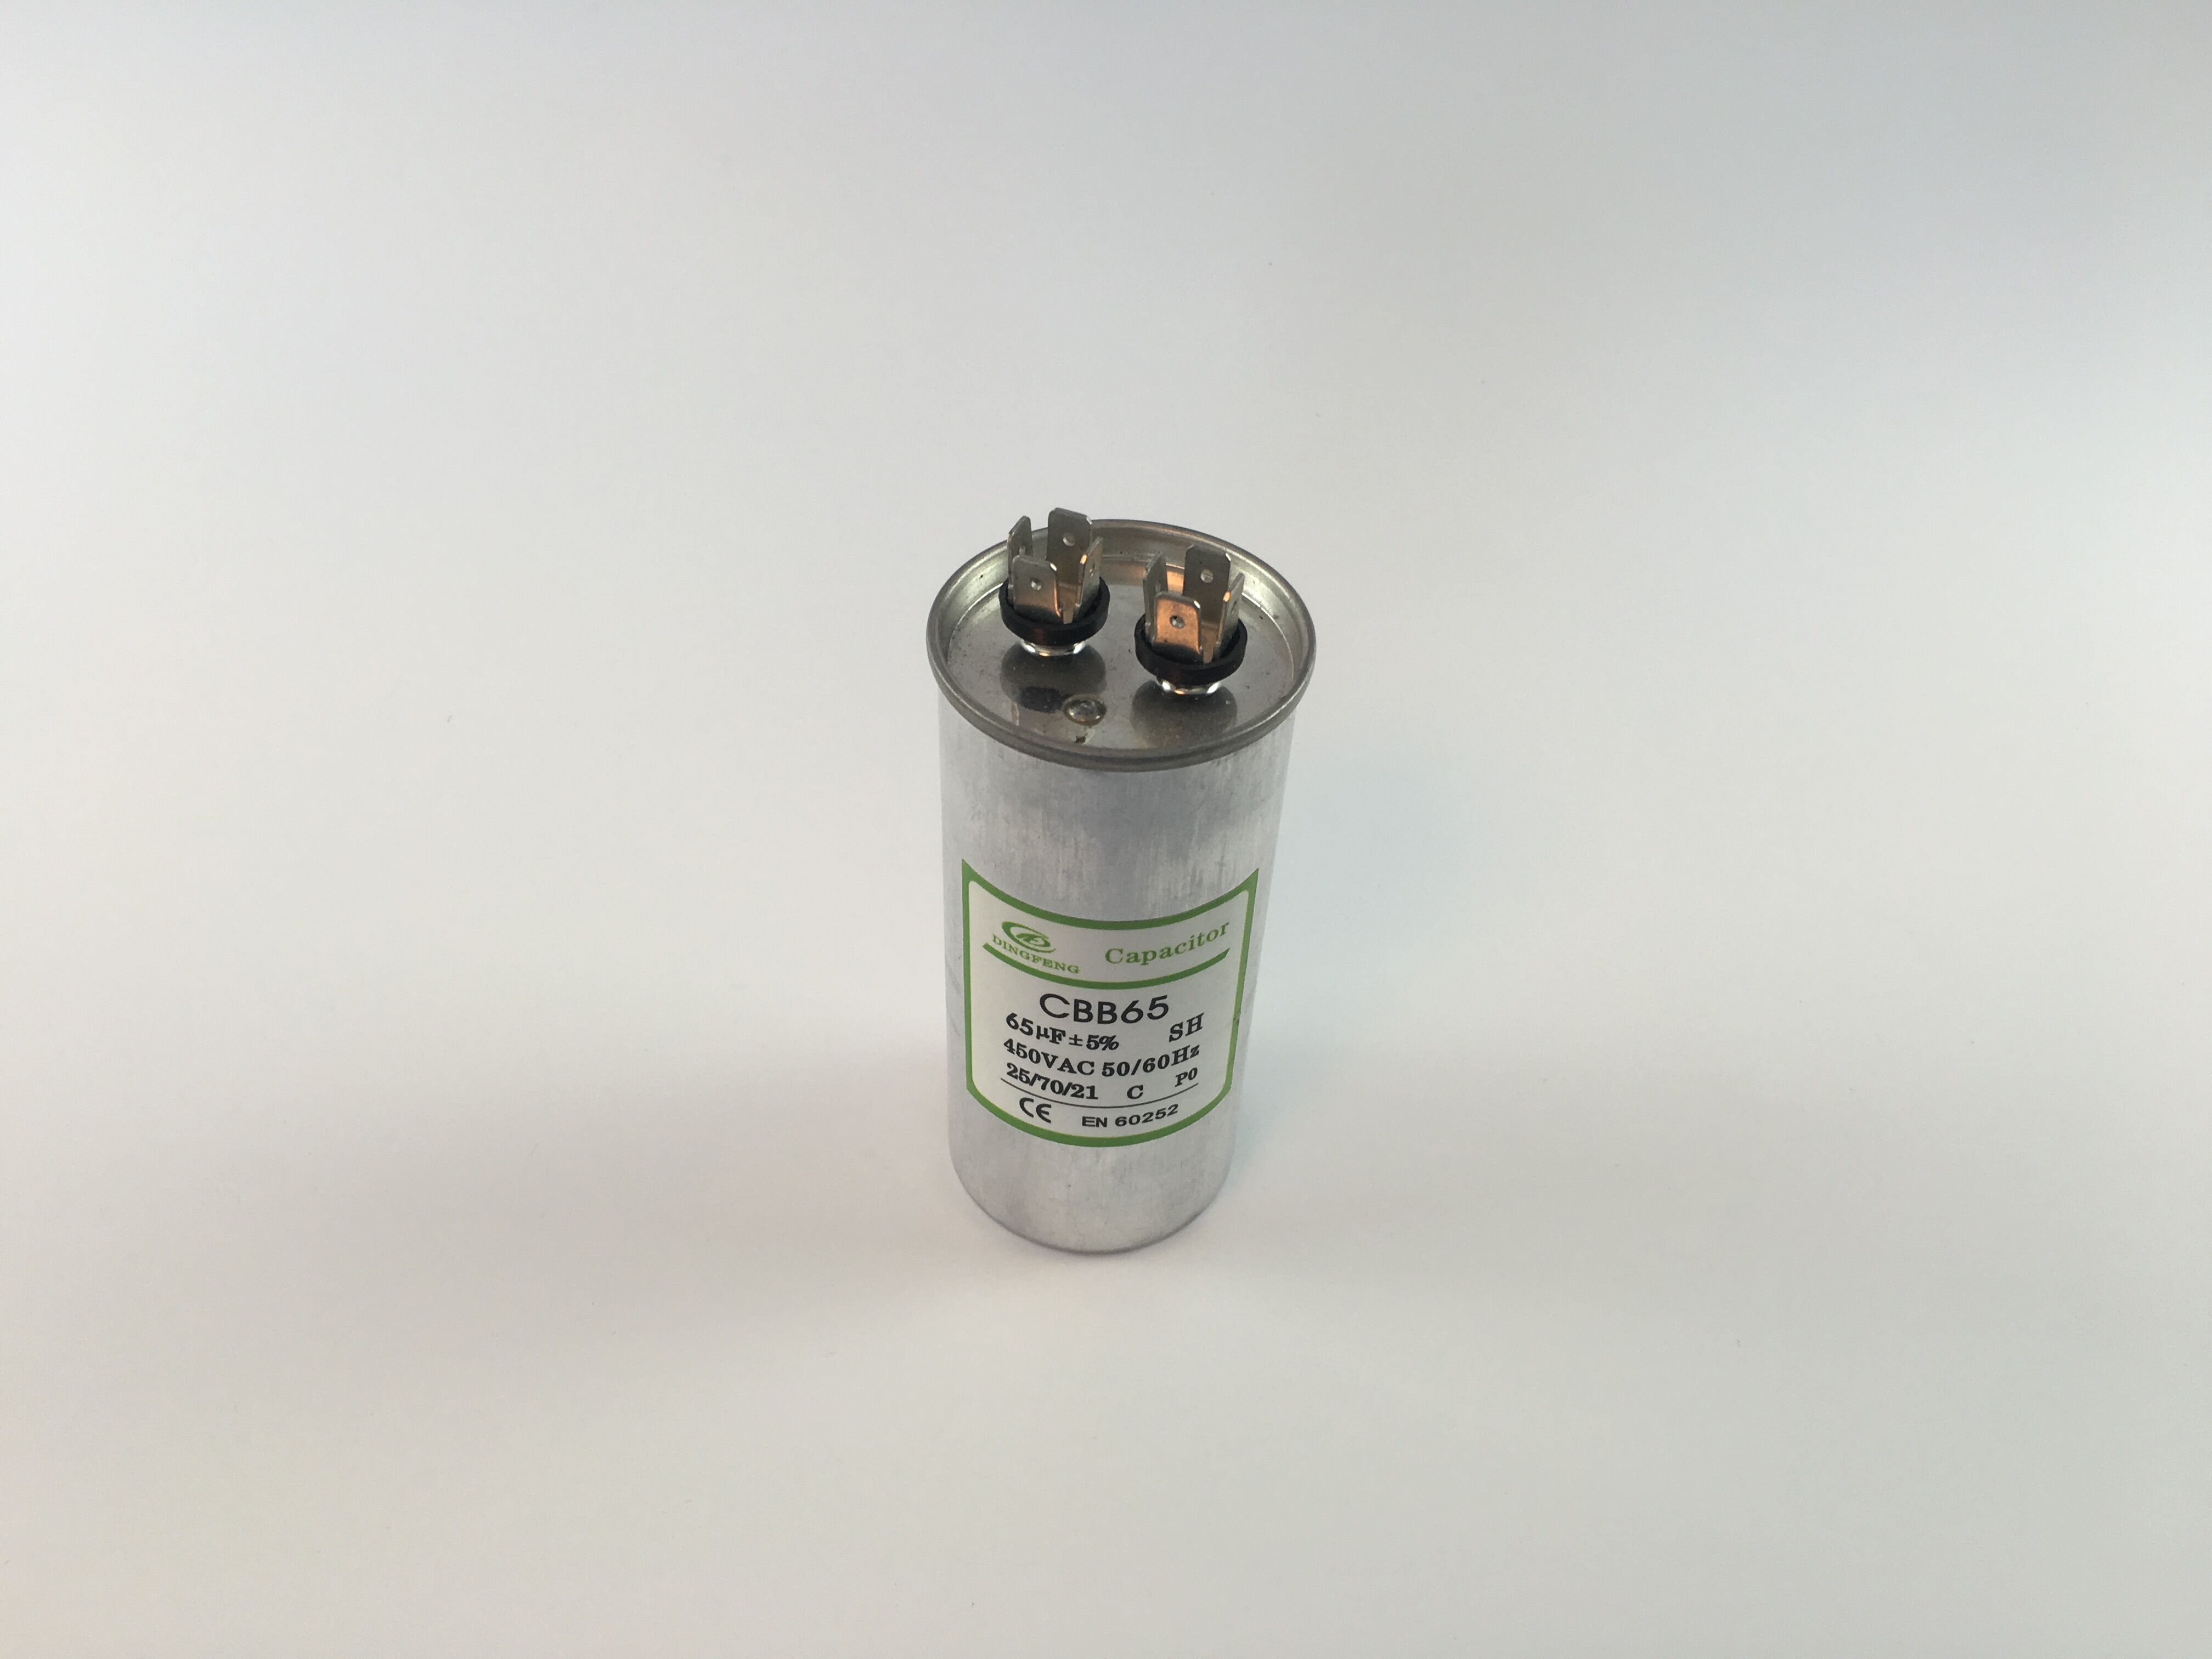 CBB65,air-conditioner capacitor,aluminum electric capacitor